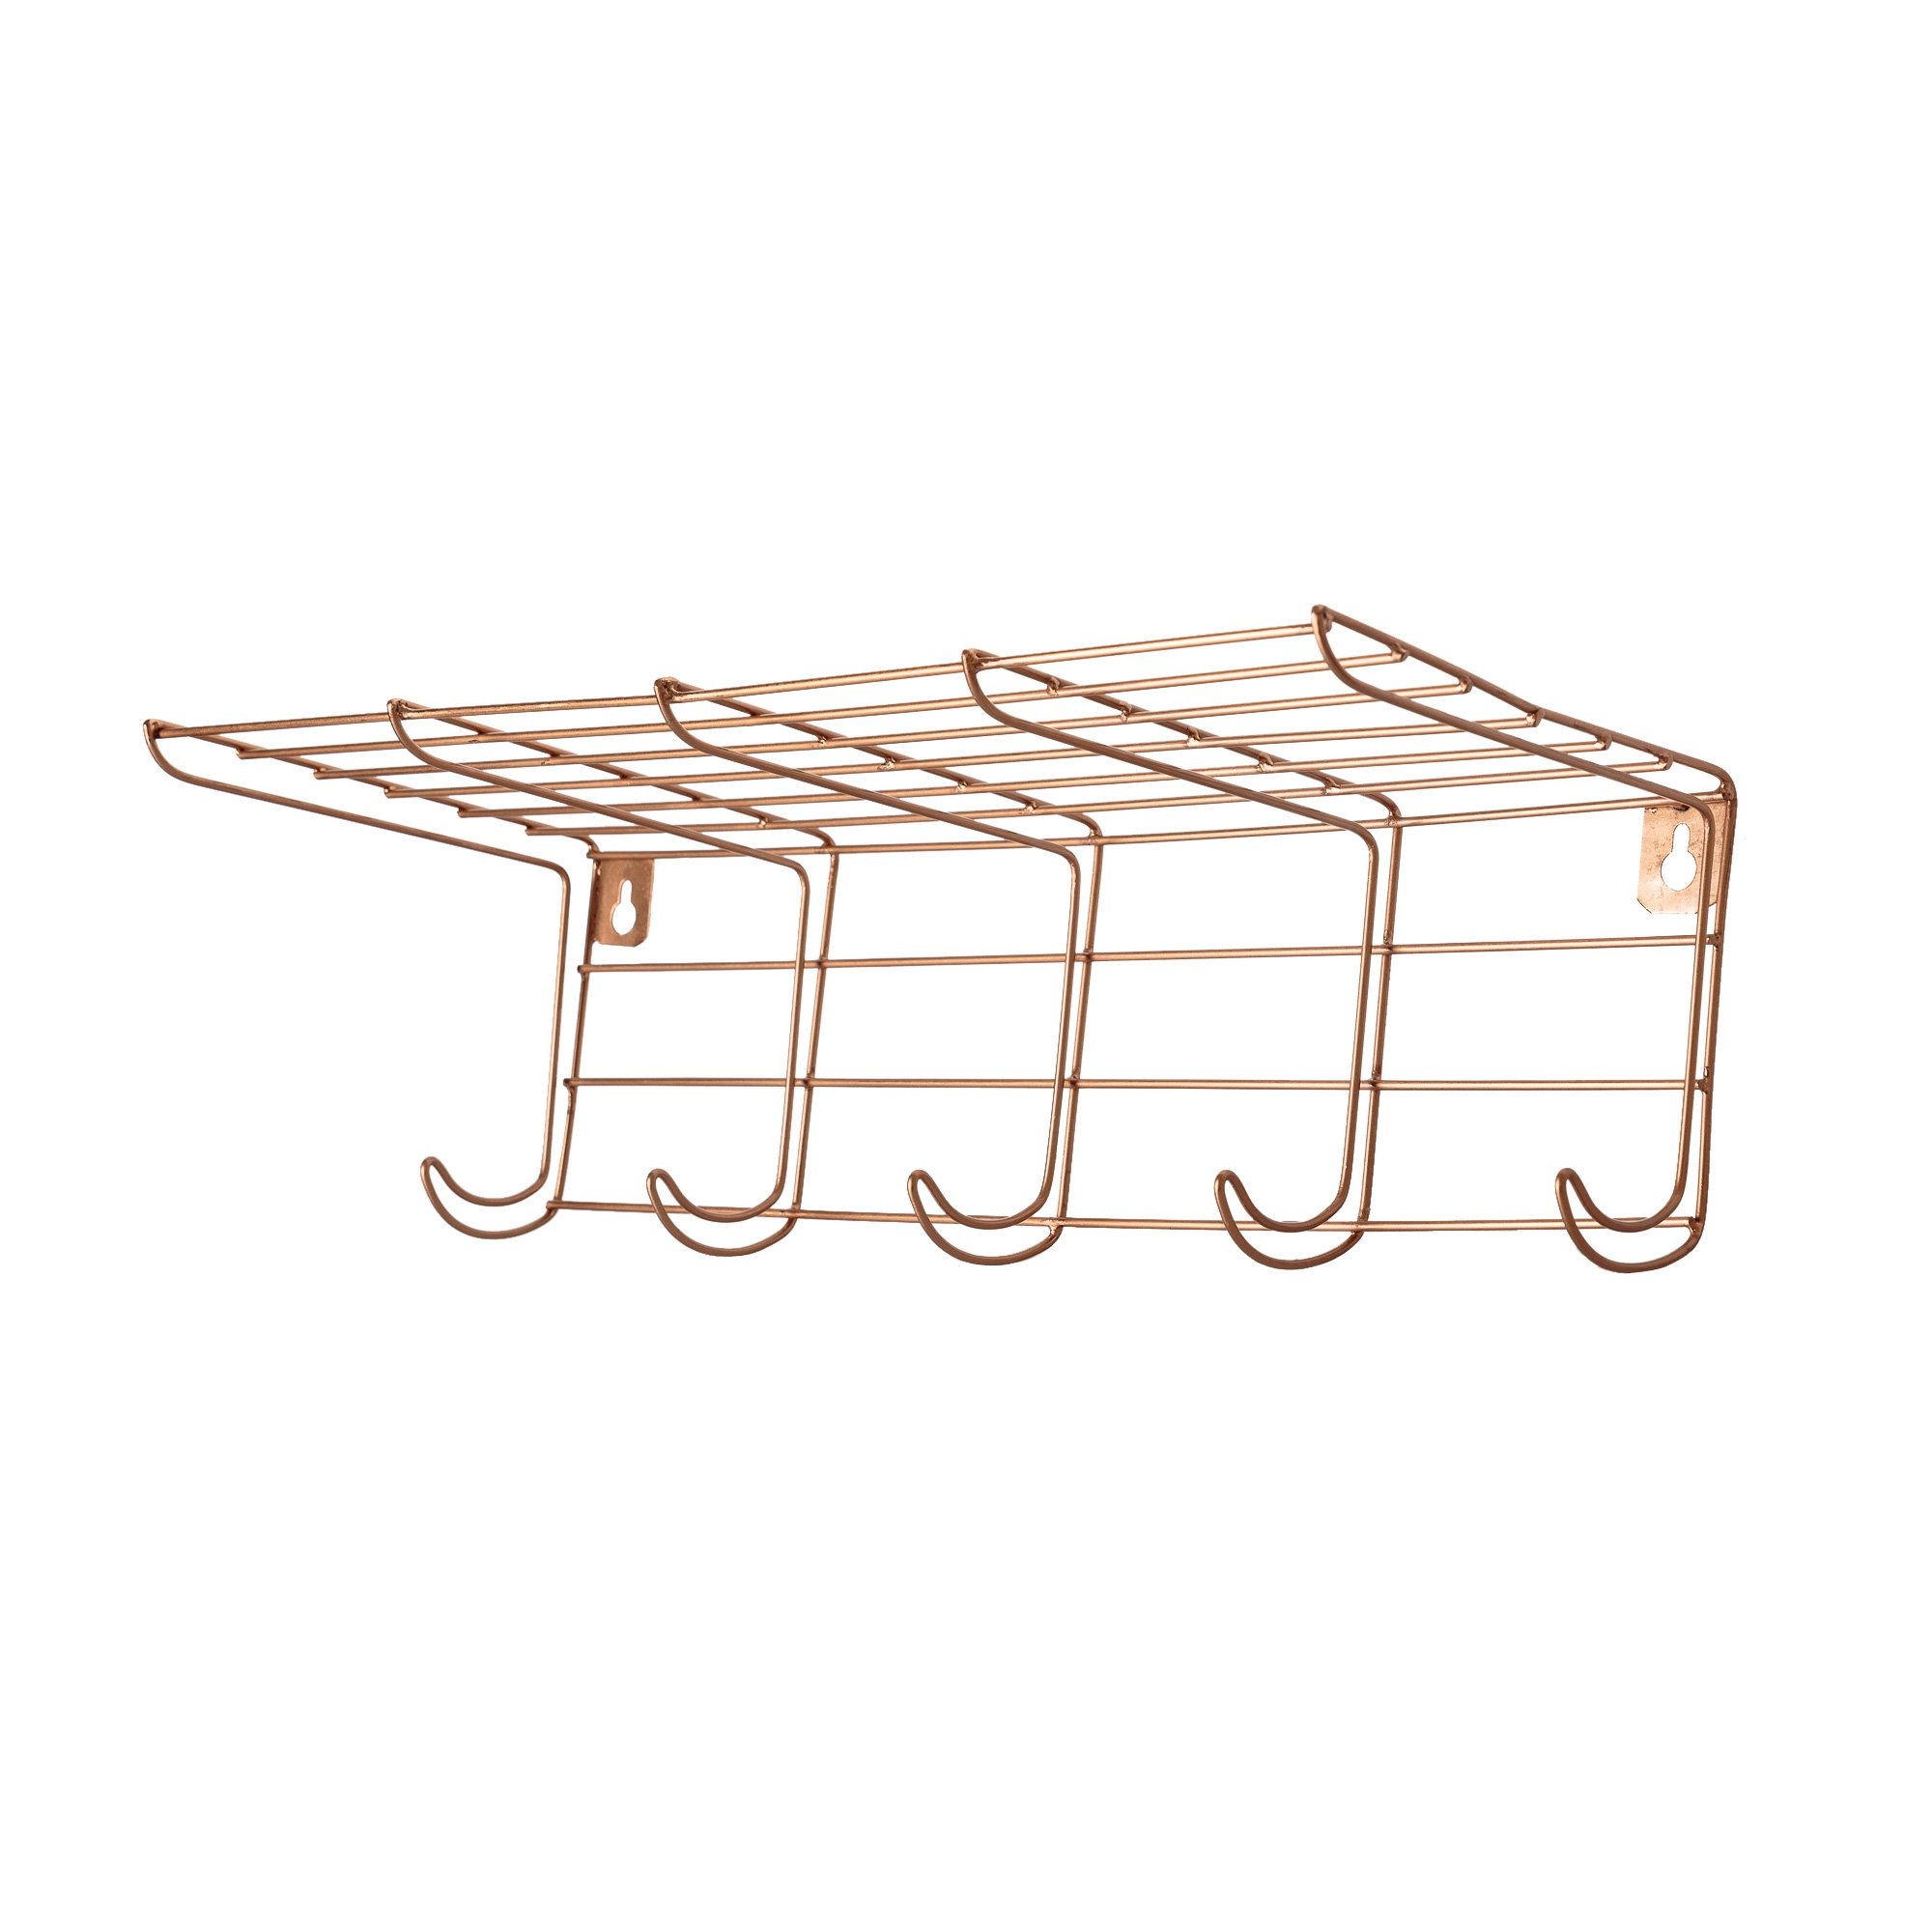 hat stand hooks rack shelf mounted wall products coat with rail spot eiche